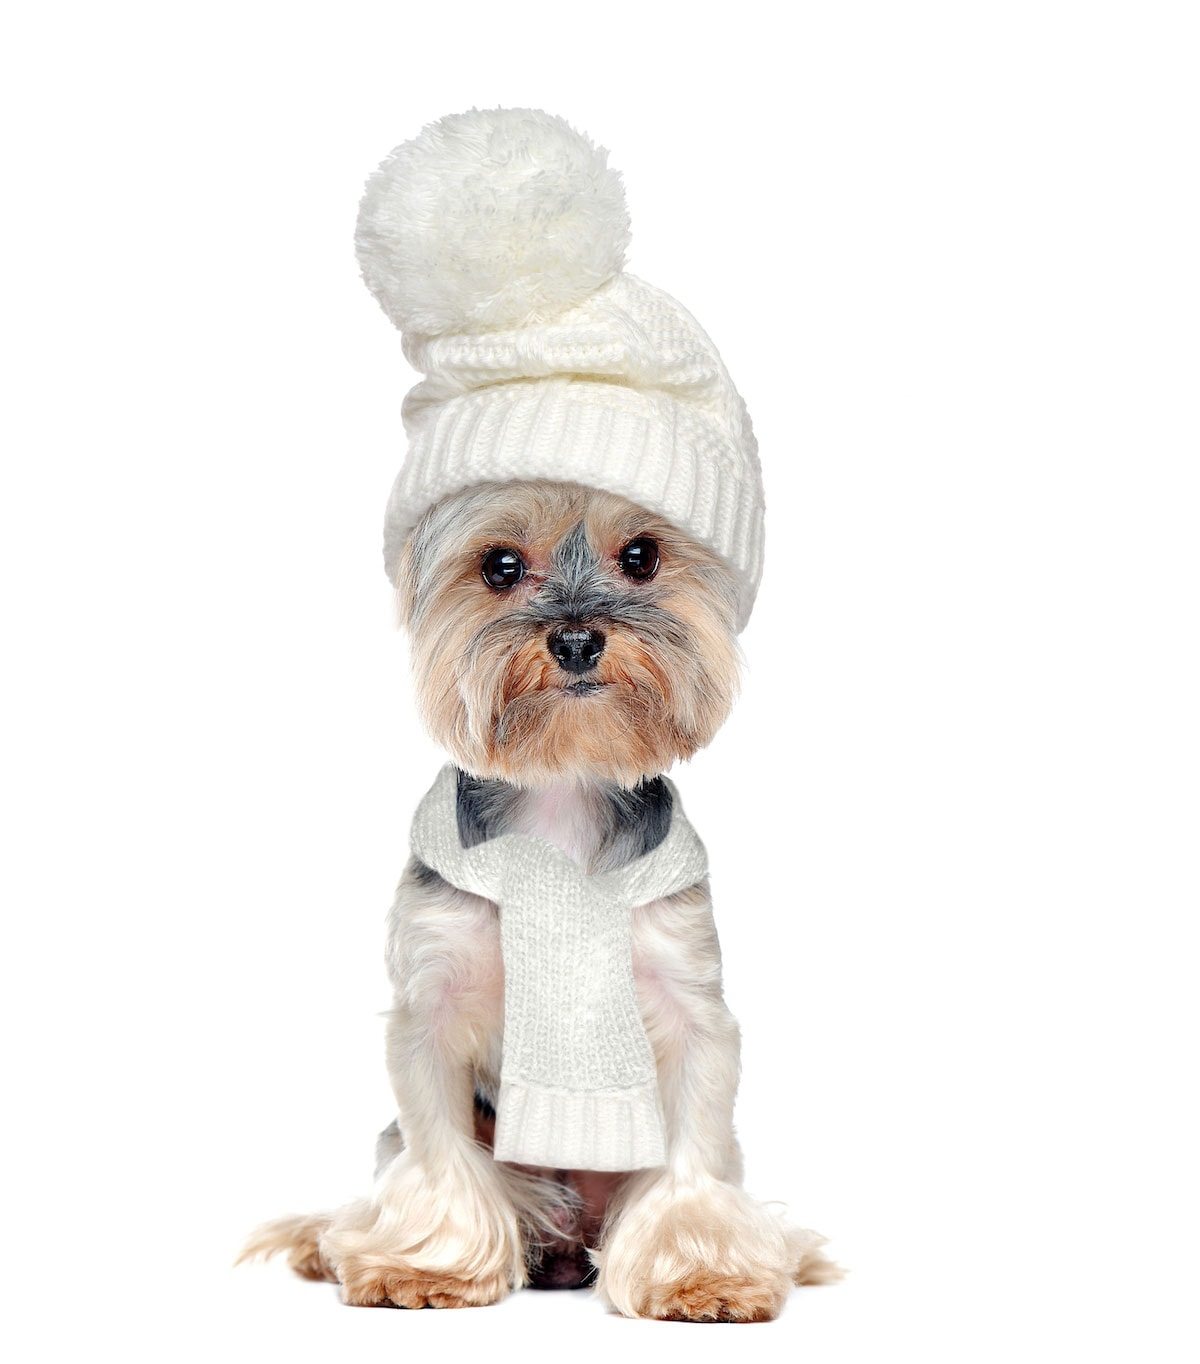 Morkie in a white hat